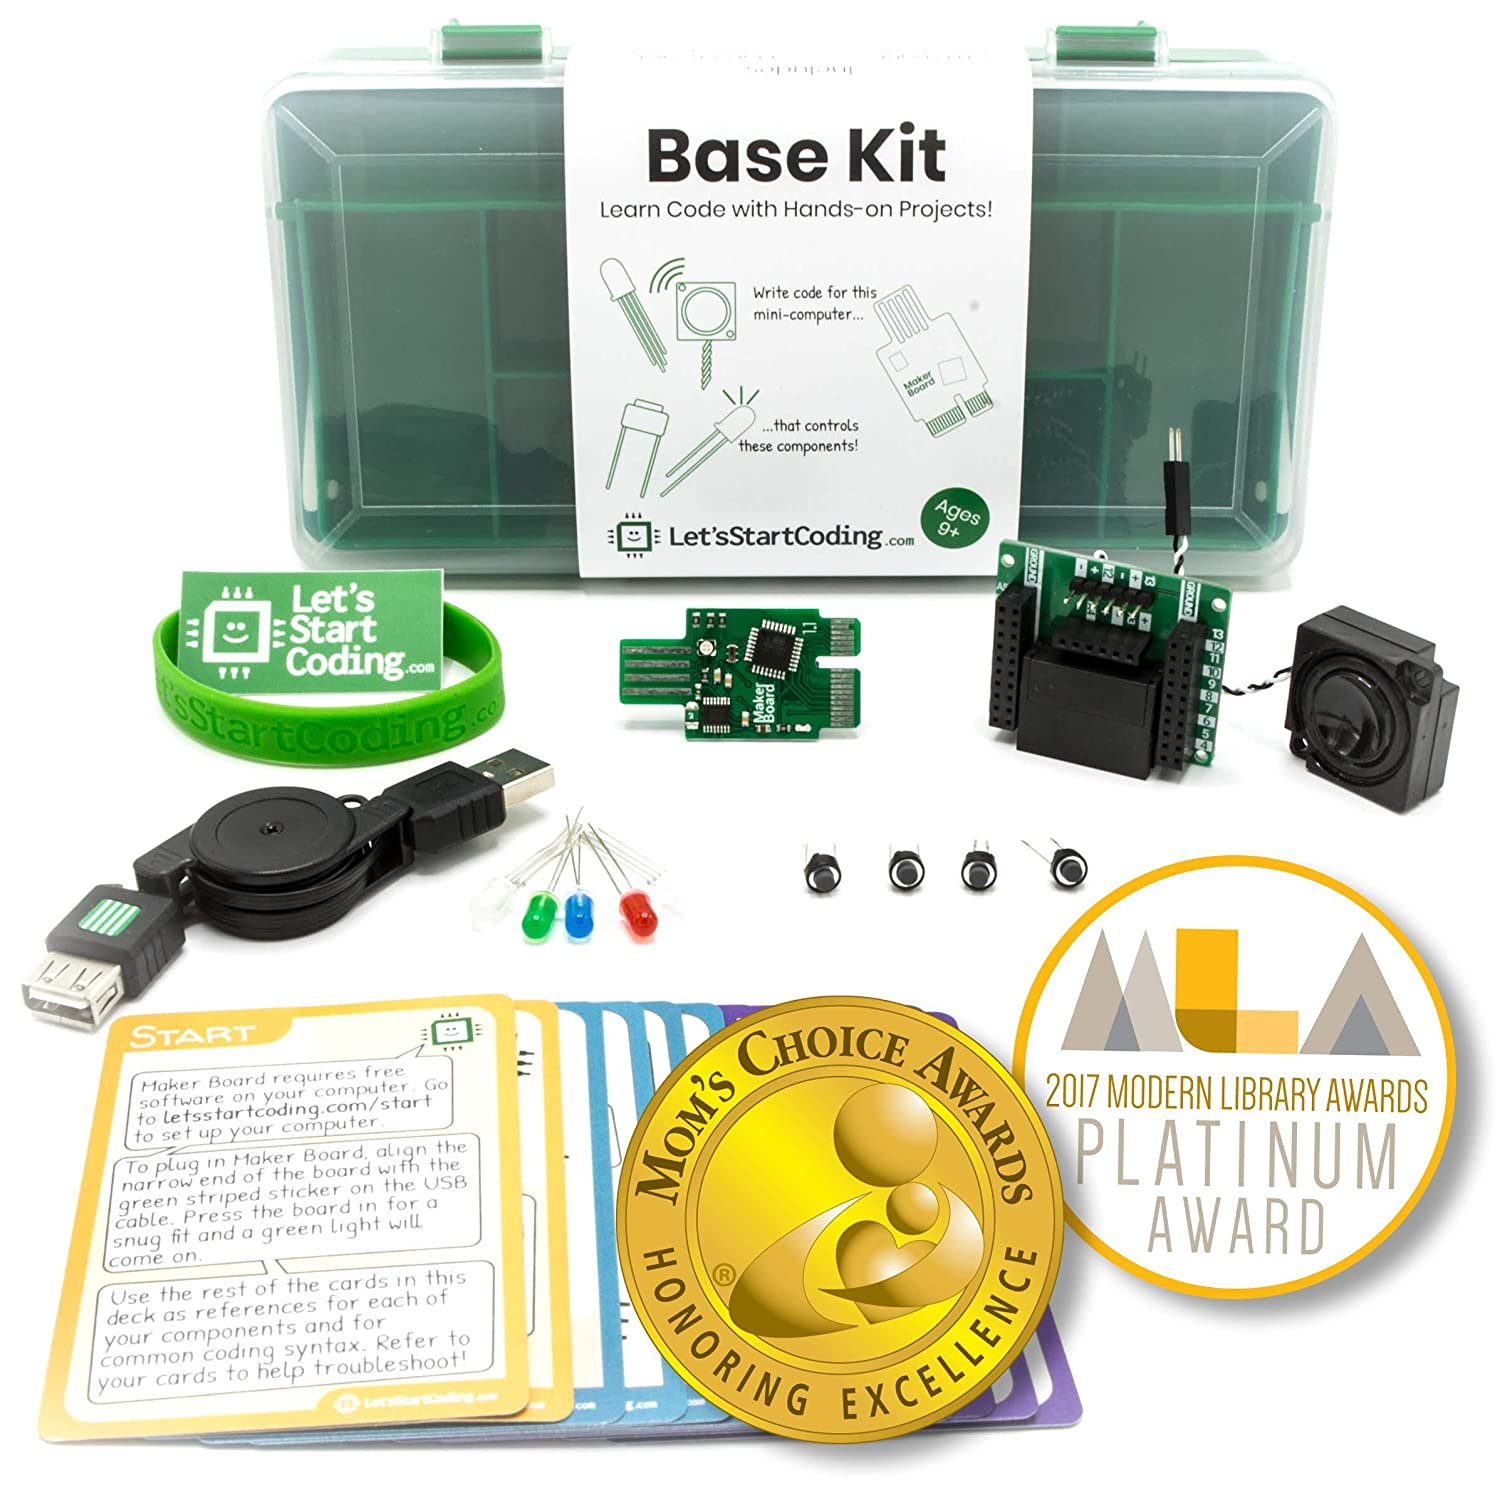 Base Coding Kit | Kids 8-12 Learn Real Code Hands-On